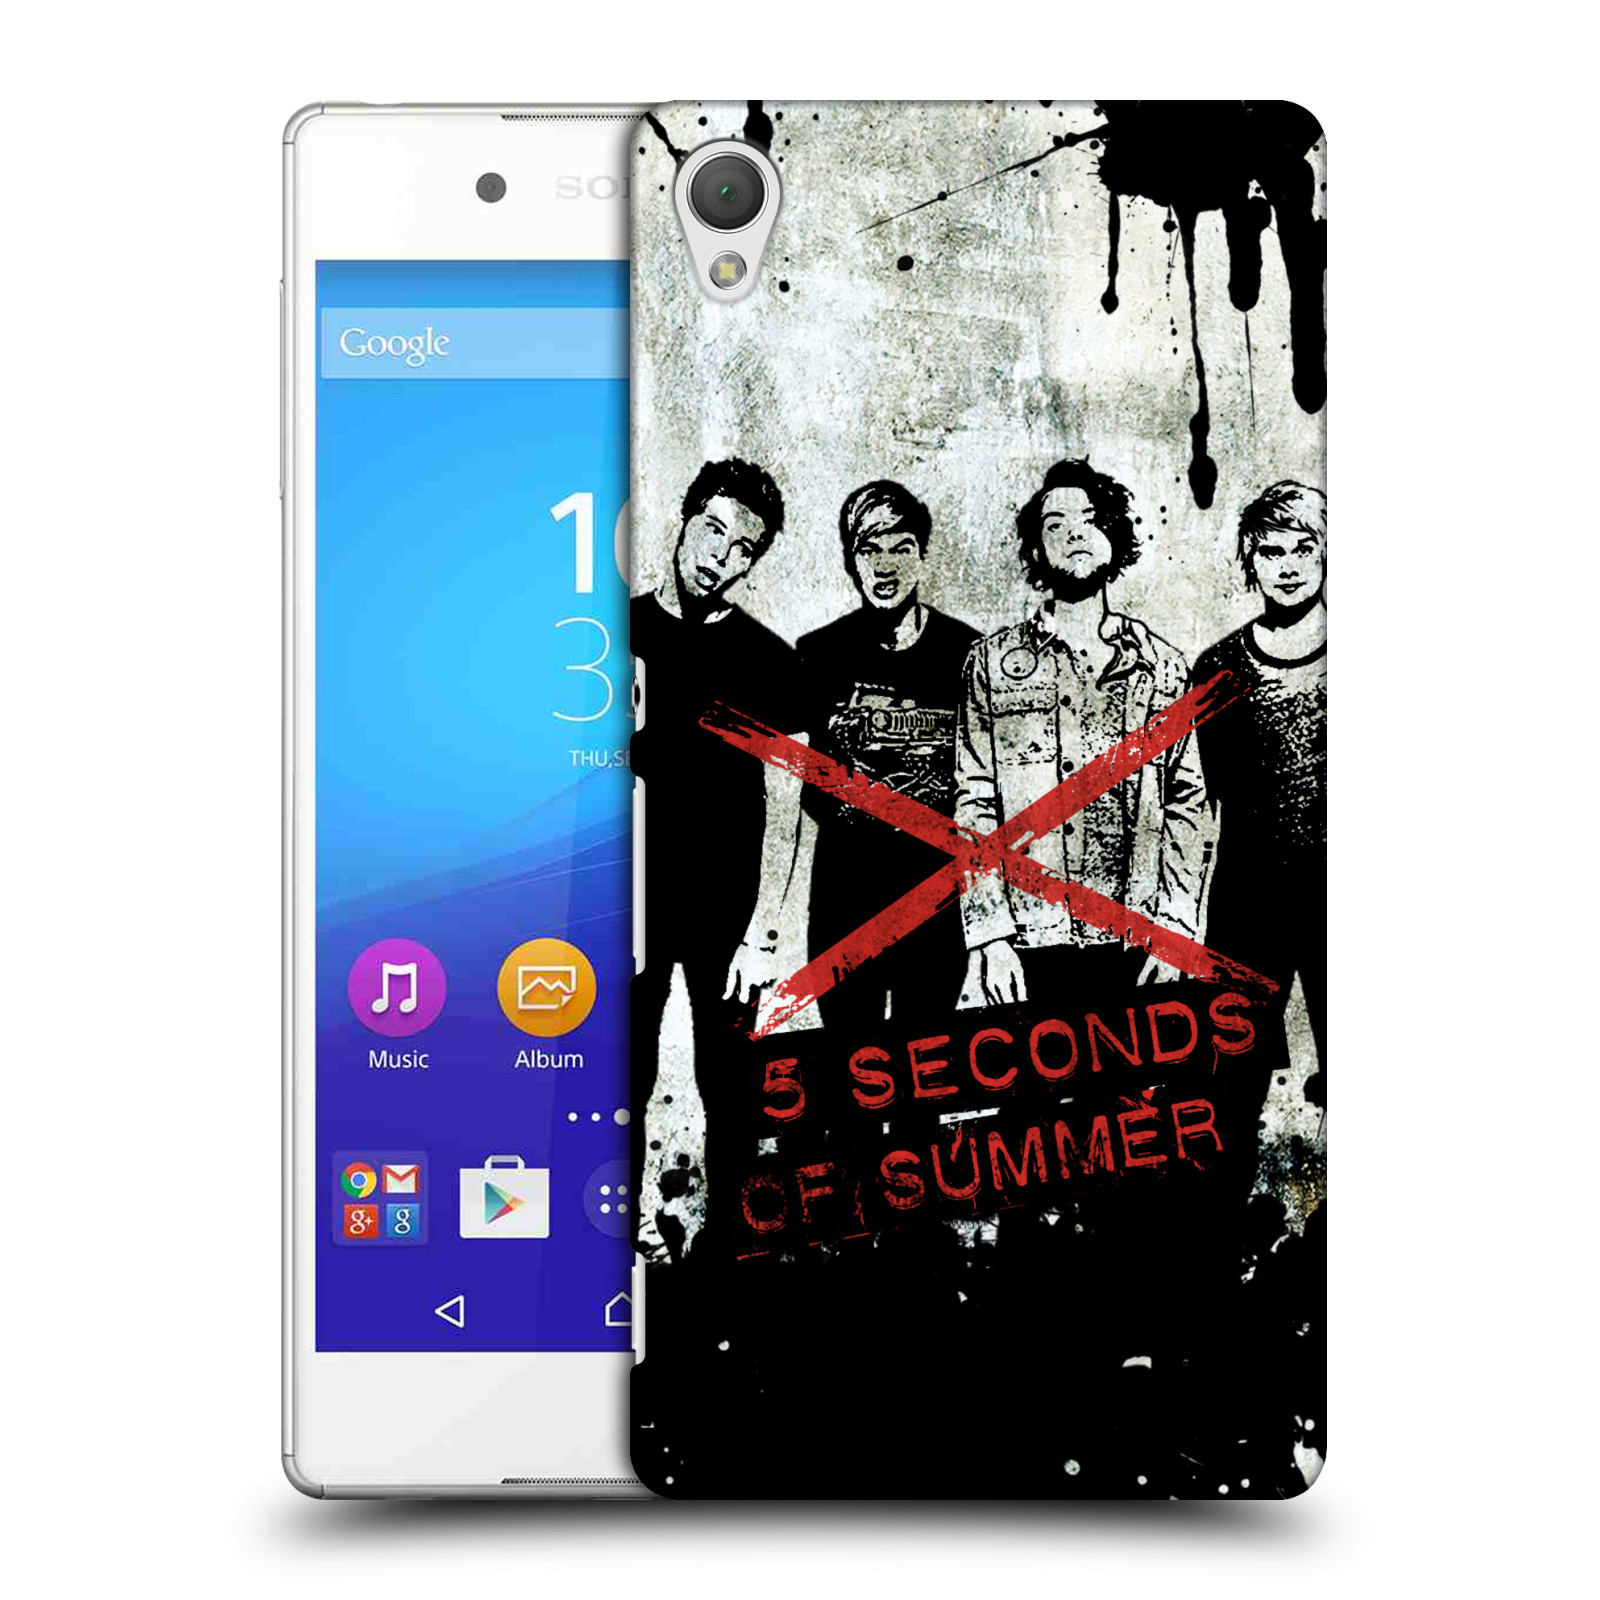 OFFICIAL 5 SECONDS OF SUMMER SPLATTER ART HARD BACK CASE FOR SONY PHONES 1